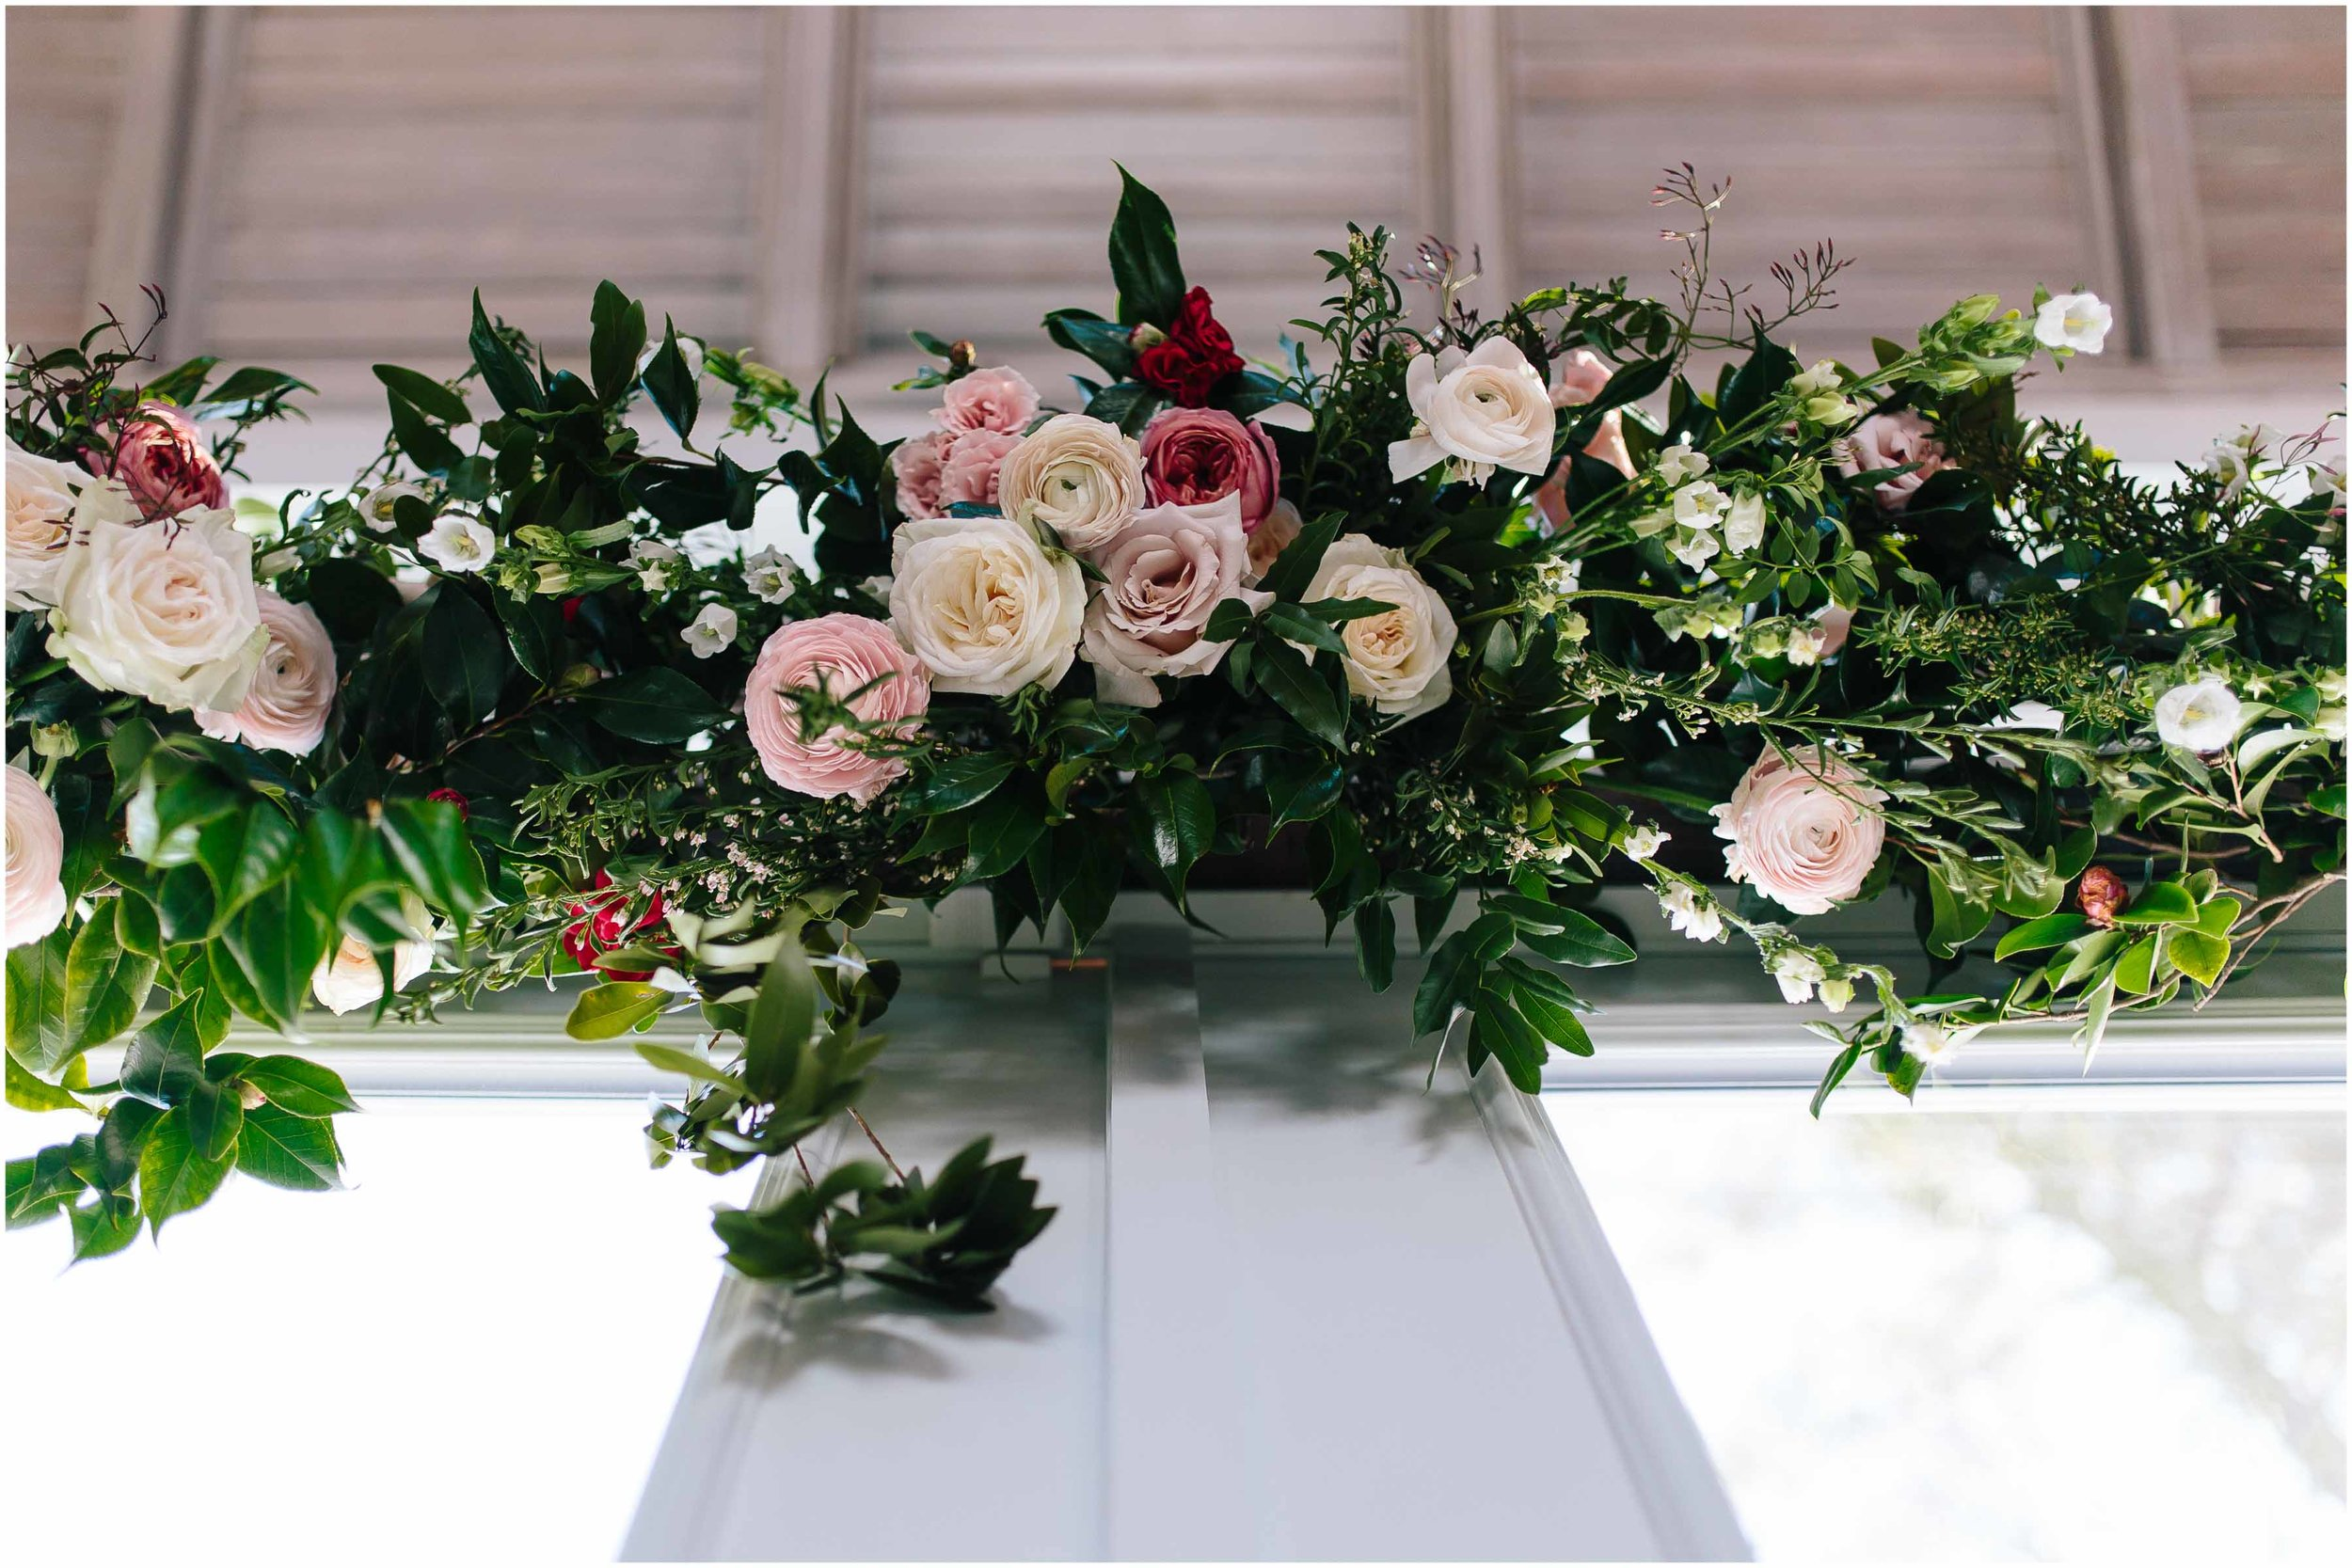 Intimate and romantic styled wedding photography in Lee, Massachusetts in the Berkshires - flowers by Ivy & Aster Floral Design